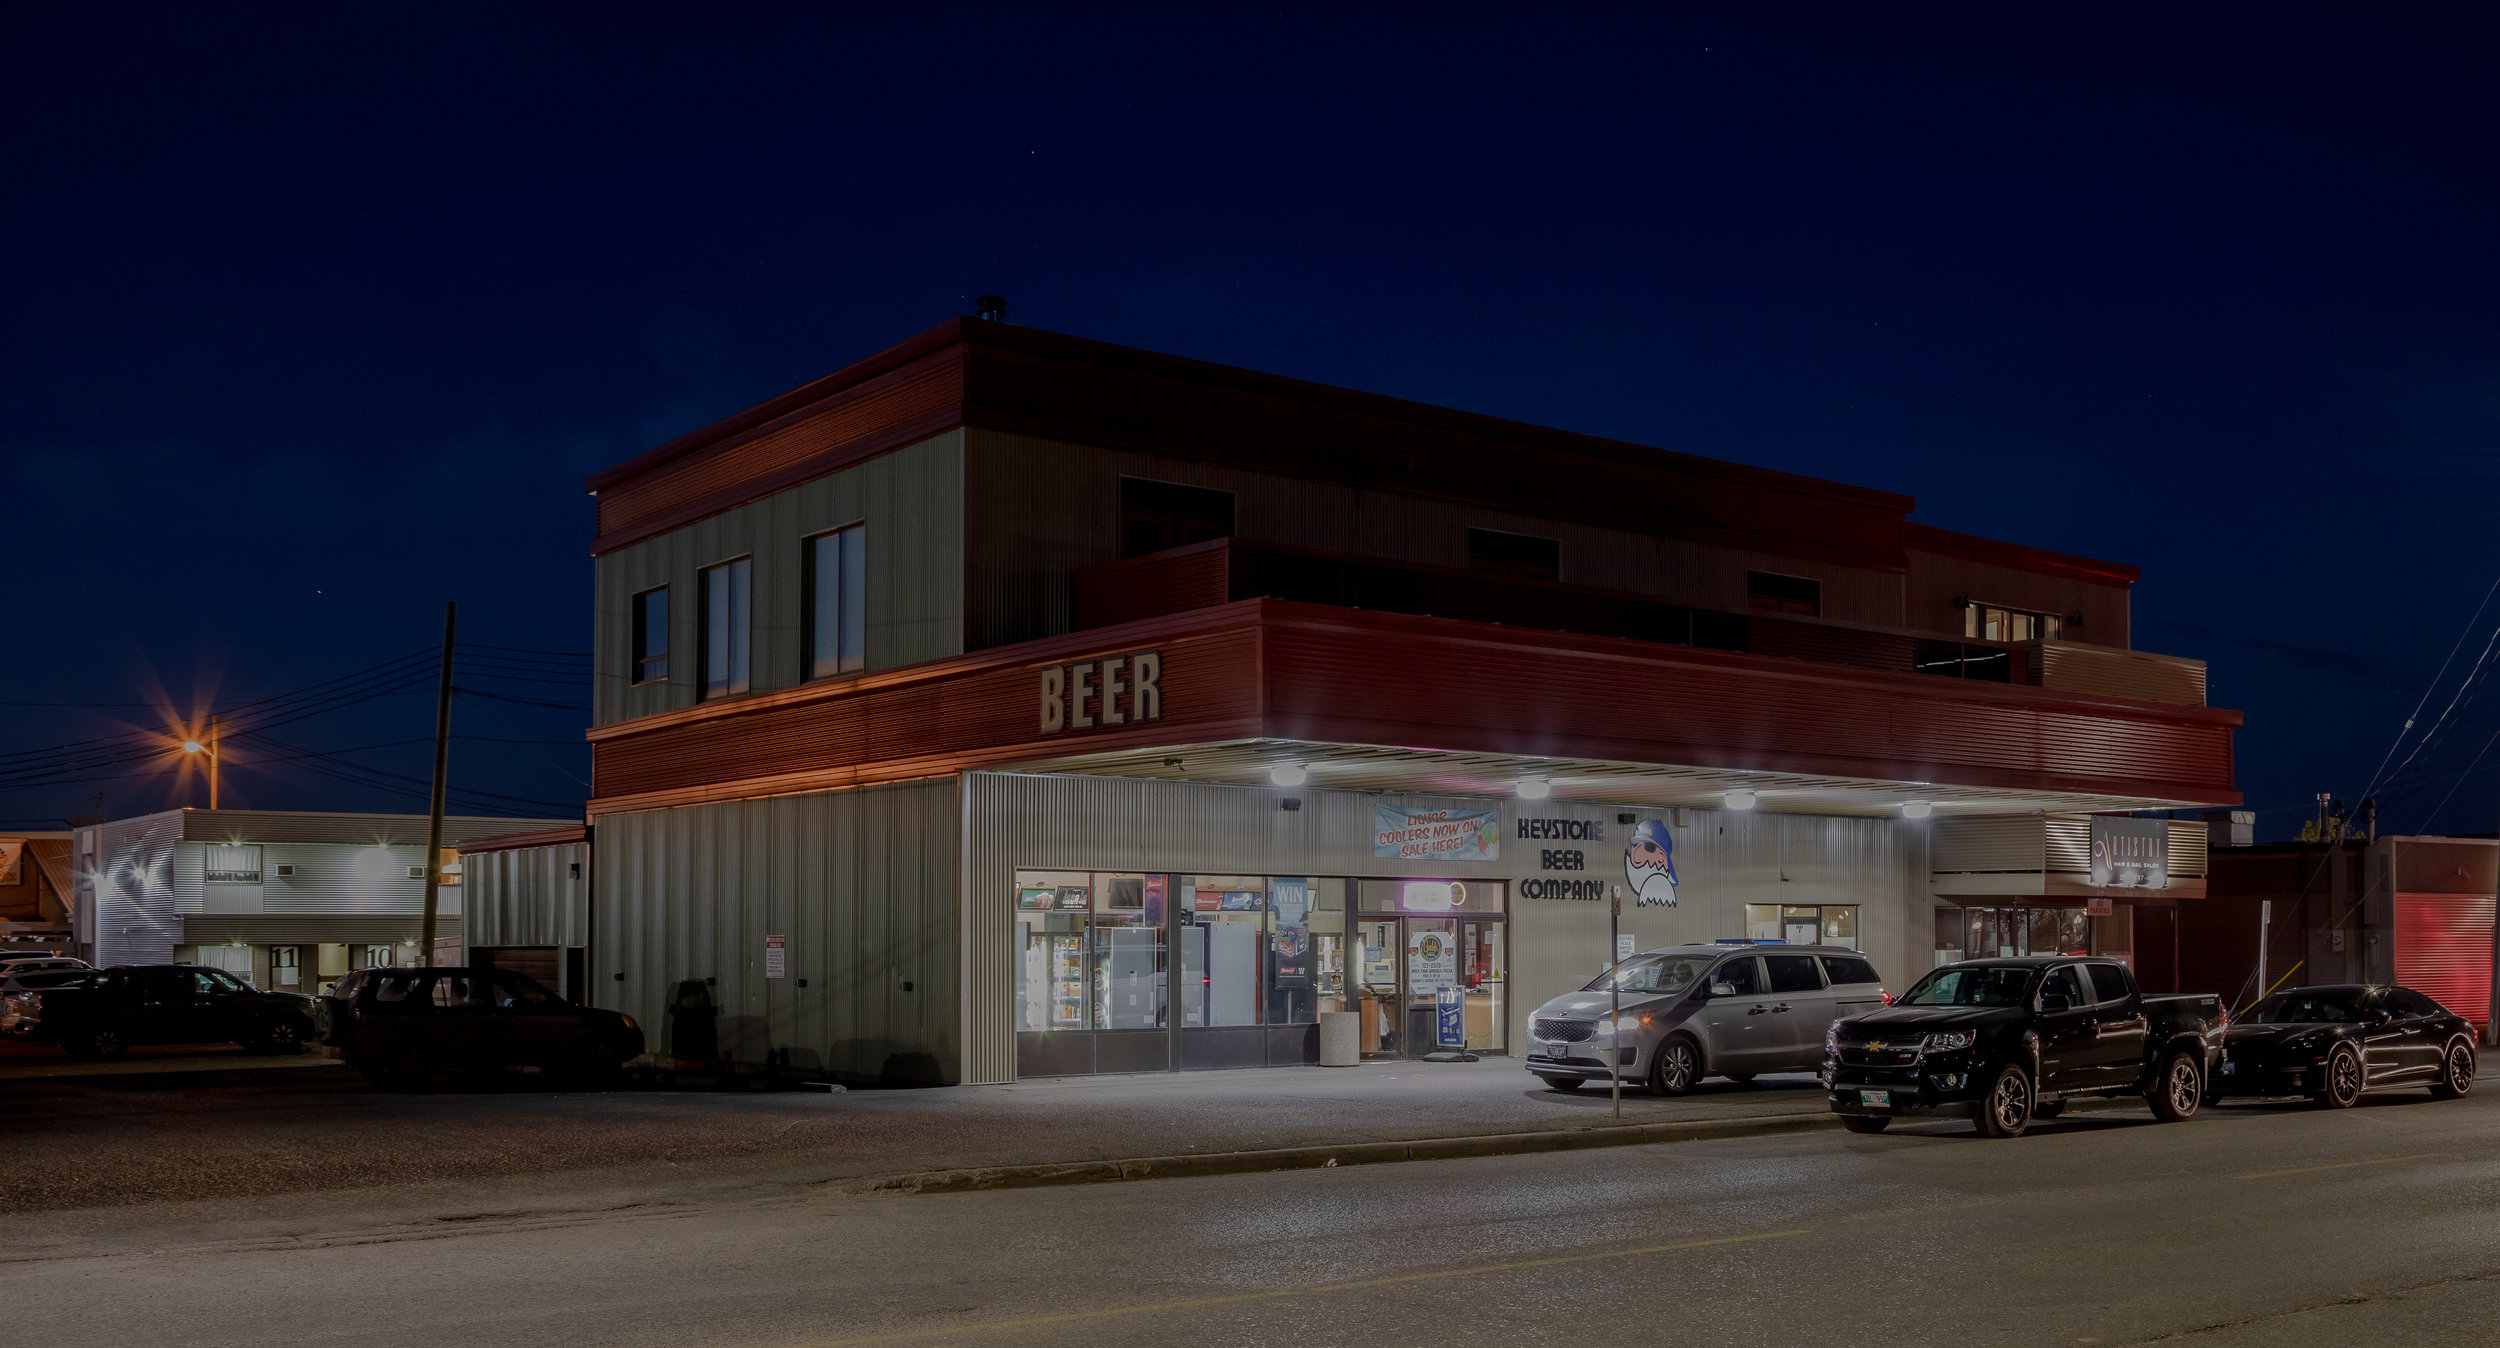 Keystone Beer Company - Thirsty? Visit our self-serve beer vendor! With over 300 different selections of beer, malt coolers, liquor coolers and ciders available, we have one of the largest selections in western Manitoba.